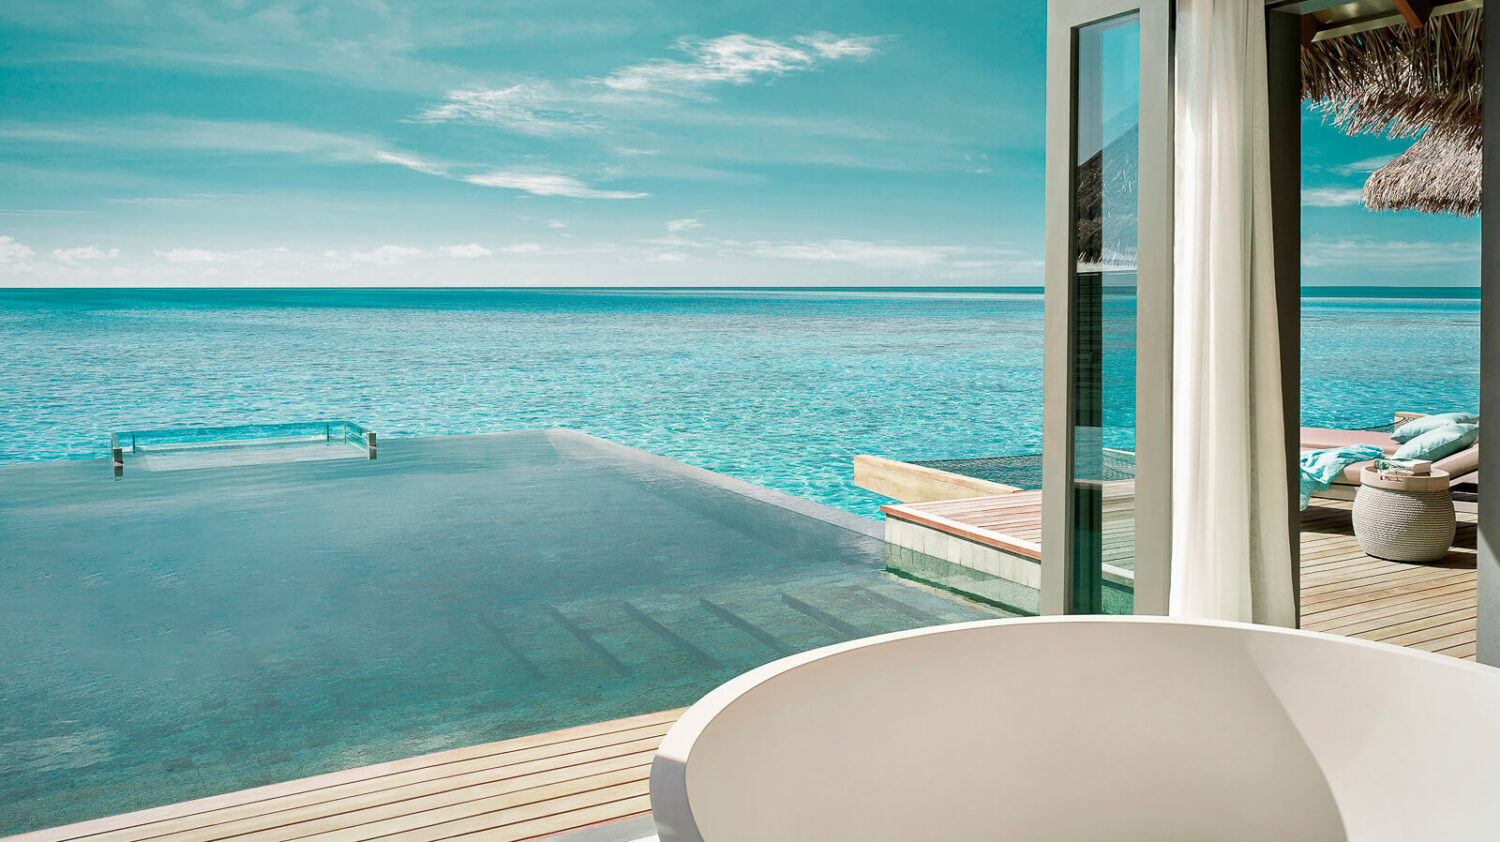 freestanding bathtub-vakkaru island maldives